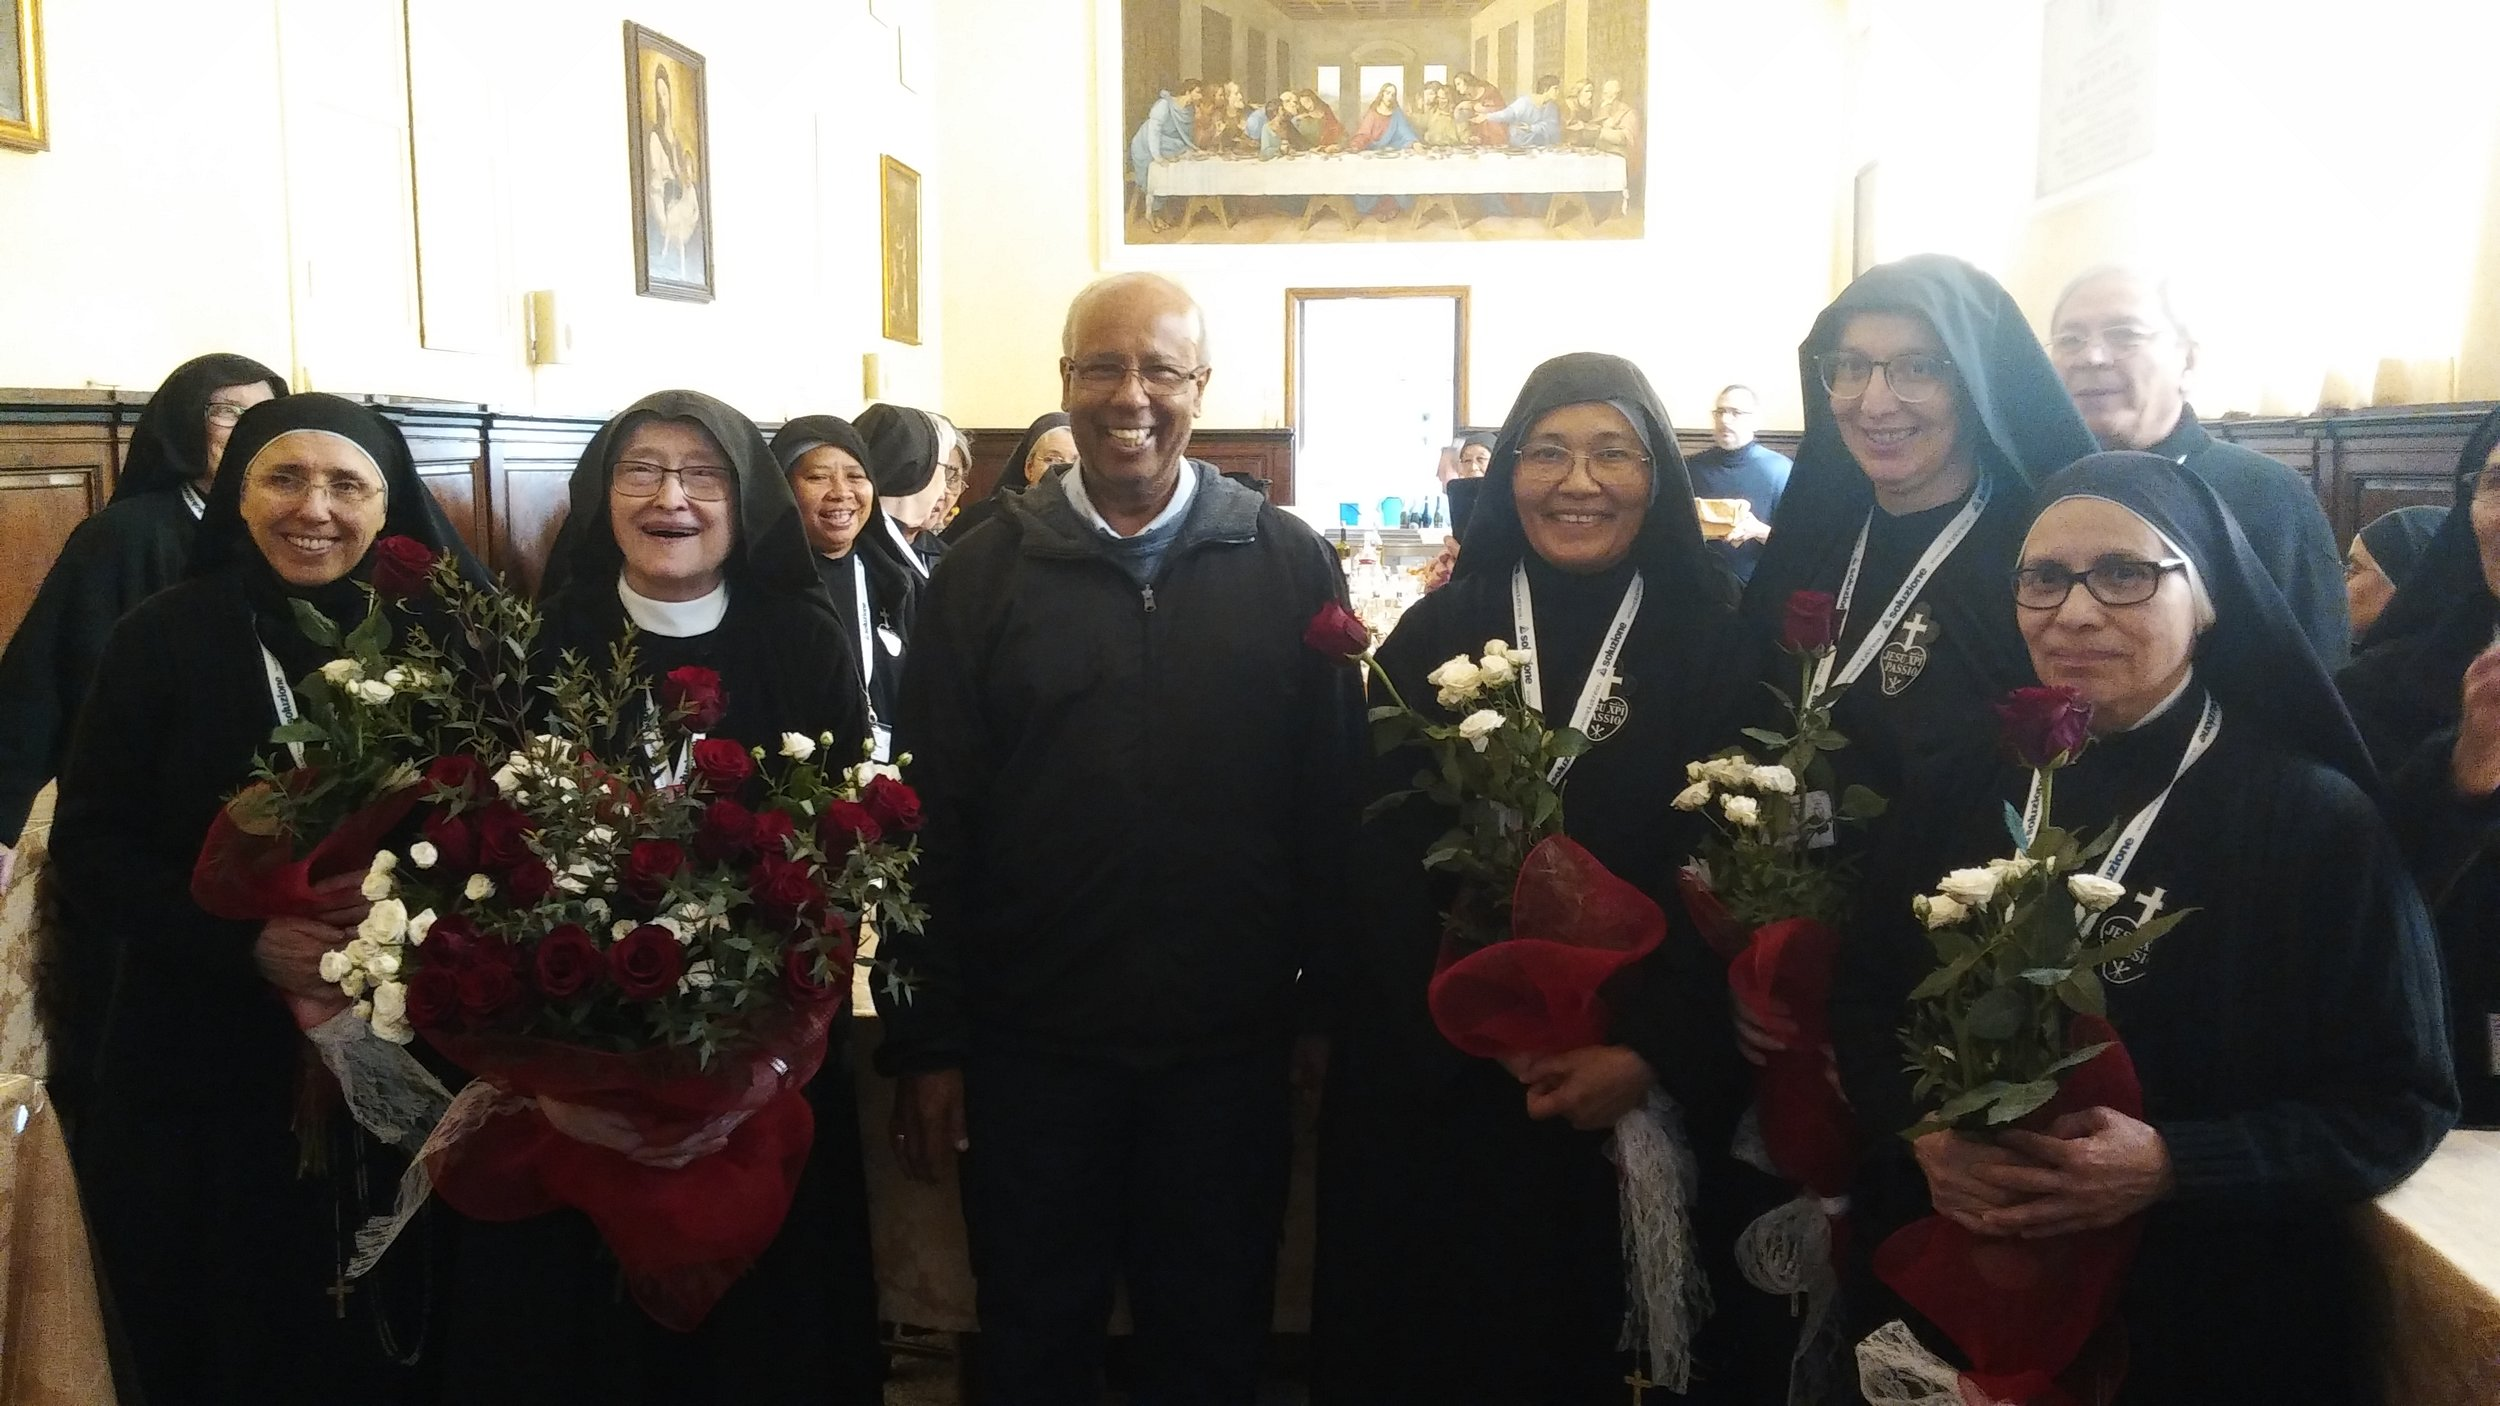 Mother Catherine Marie and her newly elected council members, with one of the Passionist Fathers